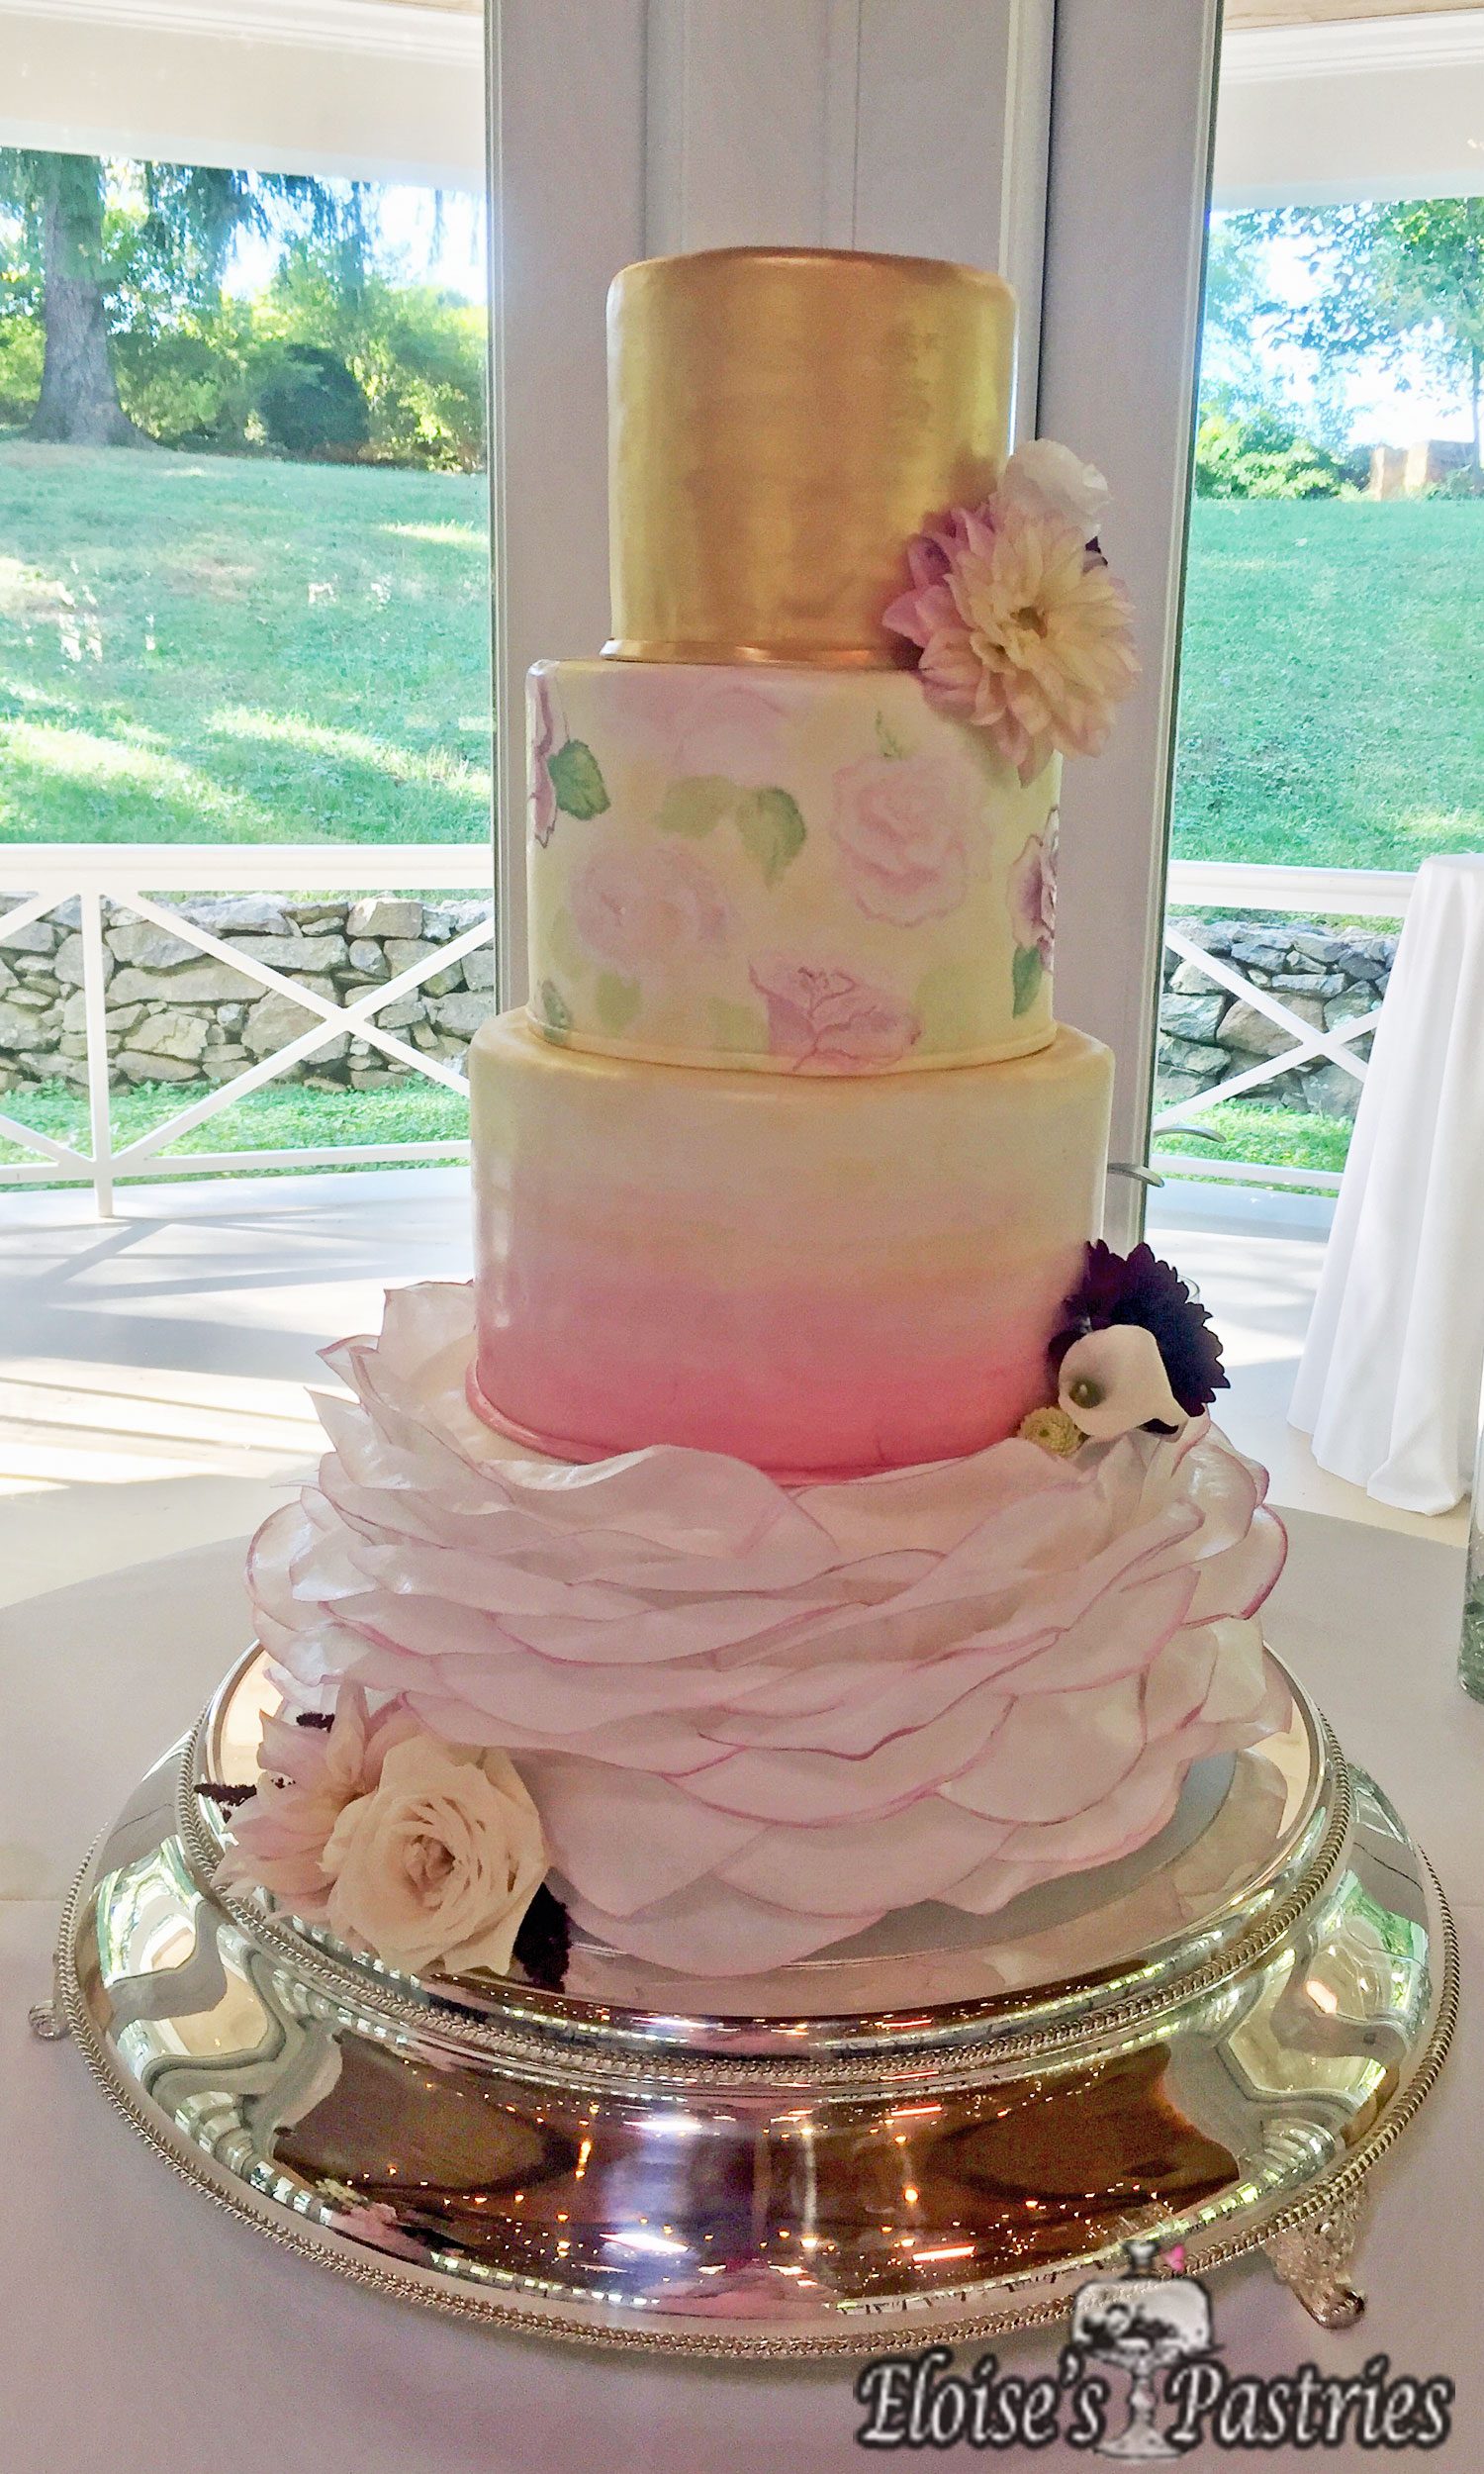 Romantic Wedding Cake in Pinks and Golds